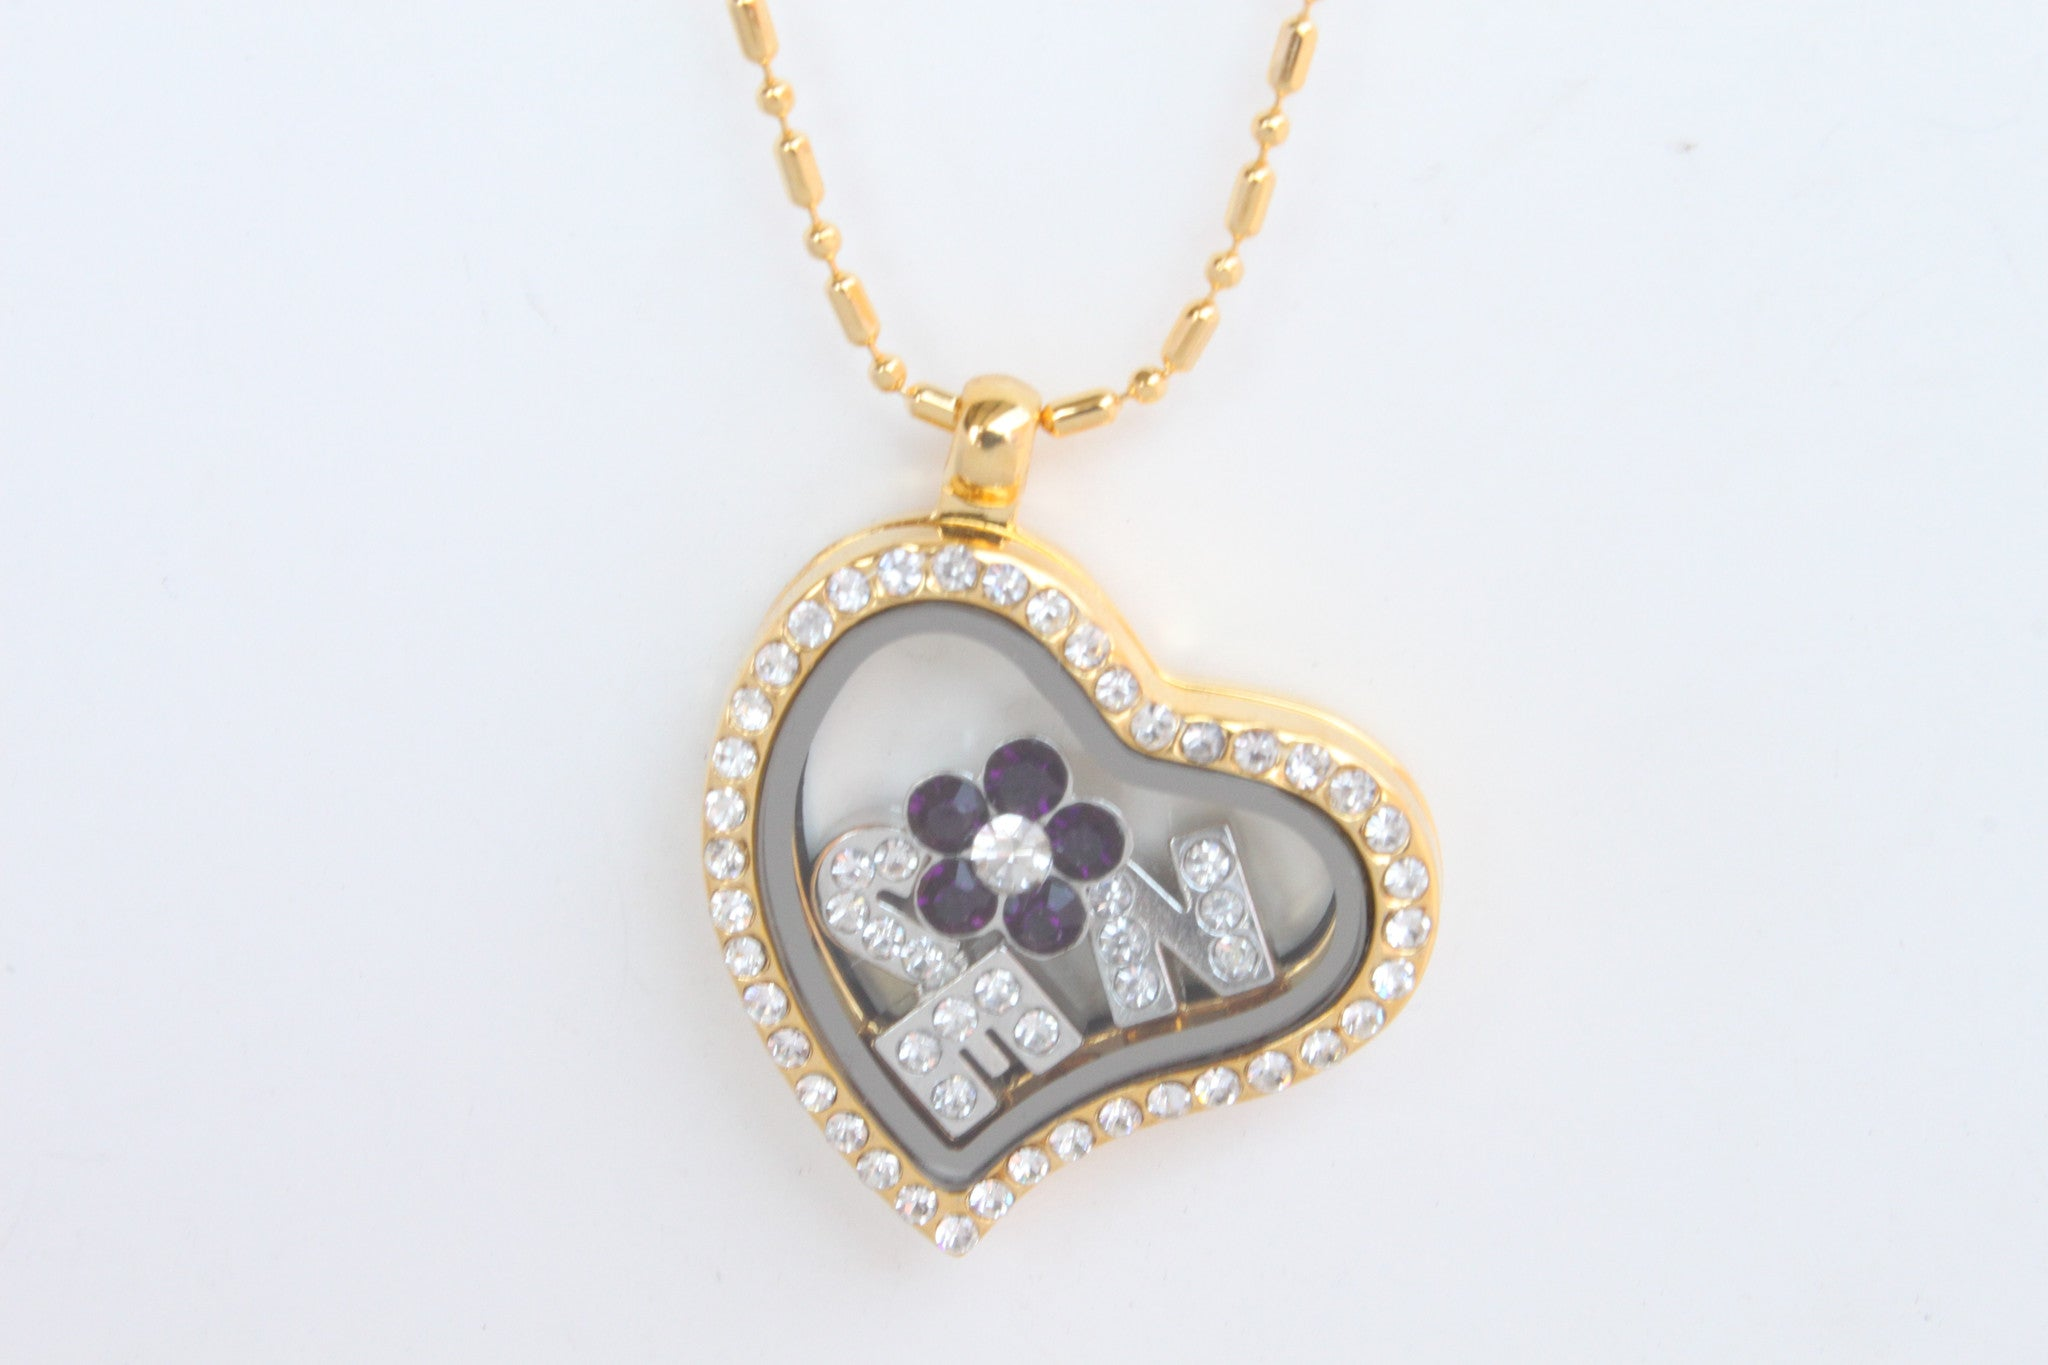 Floating Locket Necklace with Matching Chain and Choice of 6 Charms (Gold Heart)